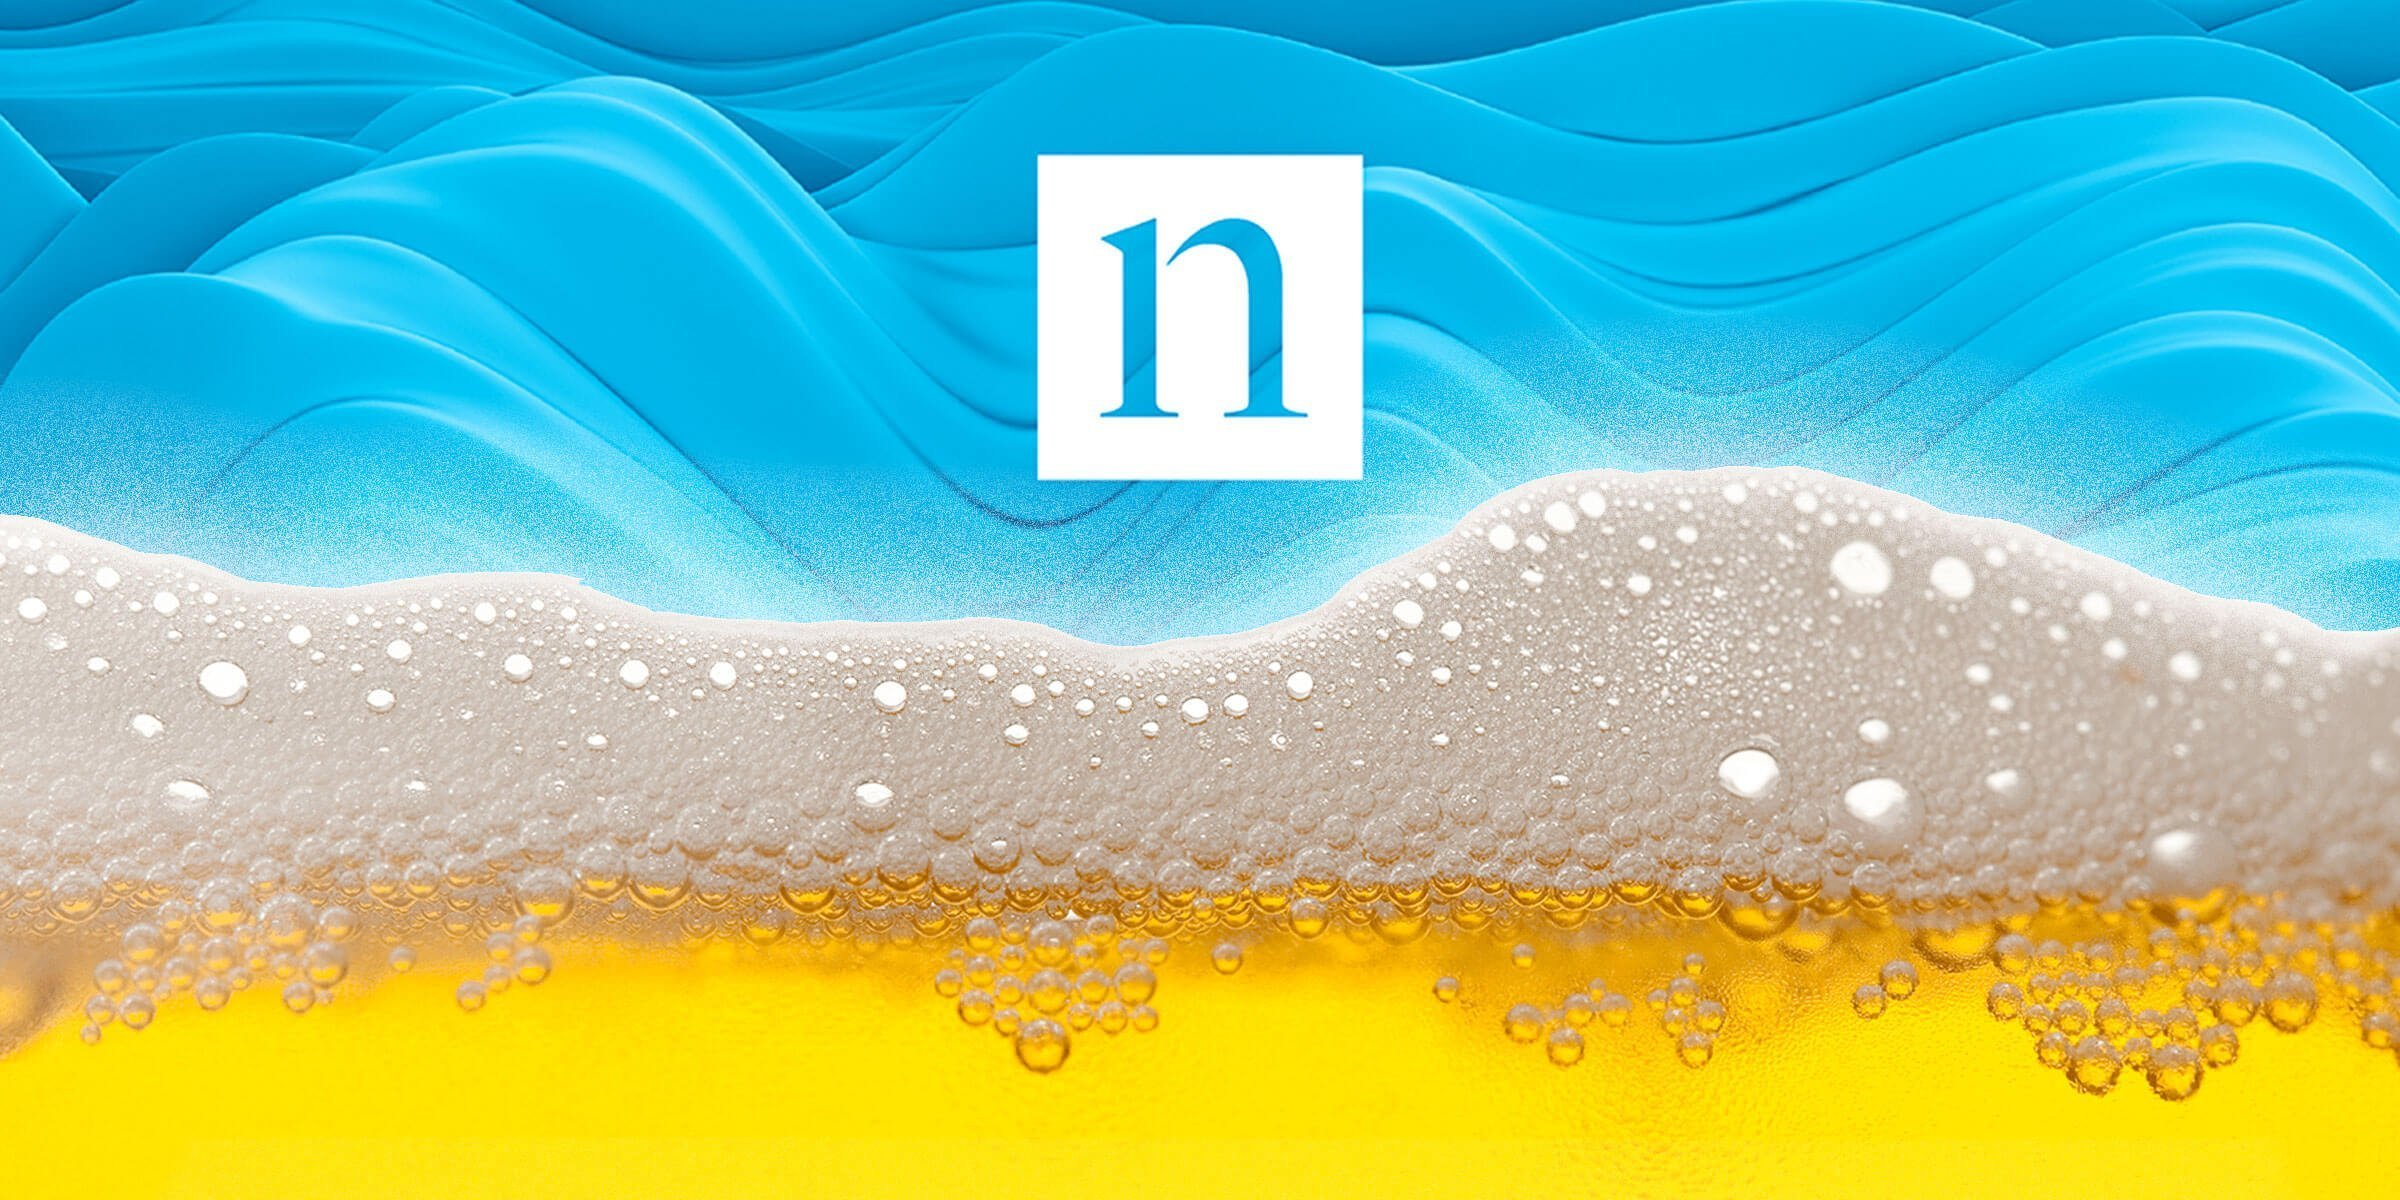 Nielsen's Alcohol Beverage Team Reveals Insights into the Beer Industry